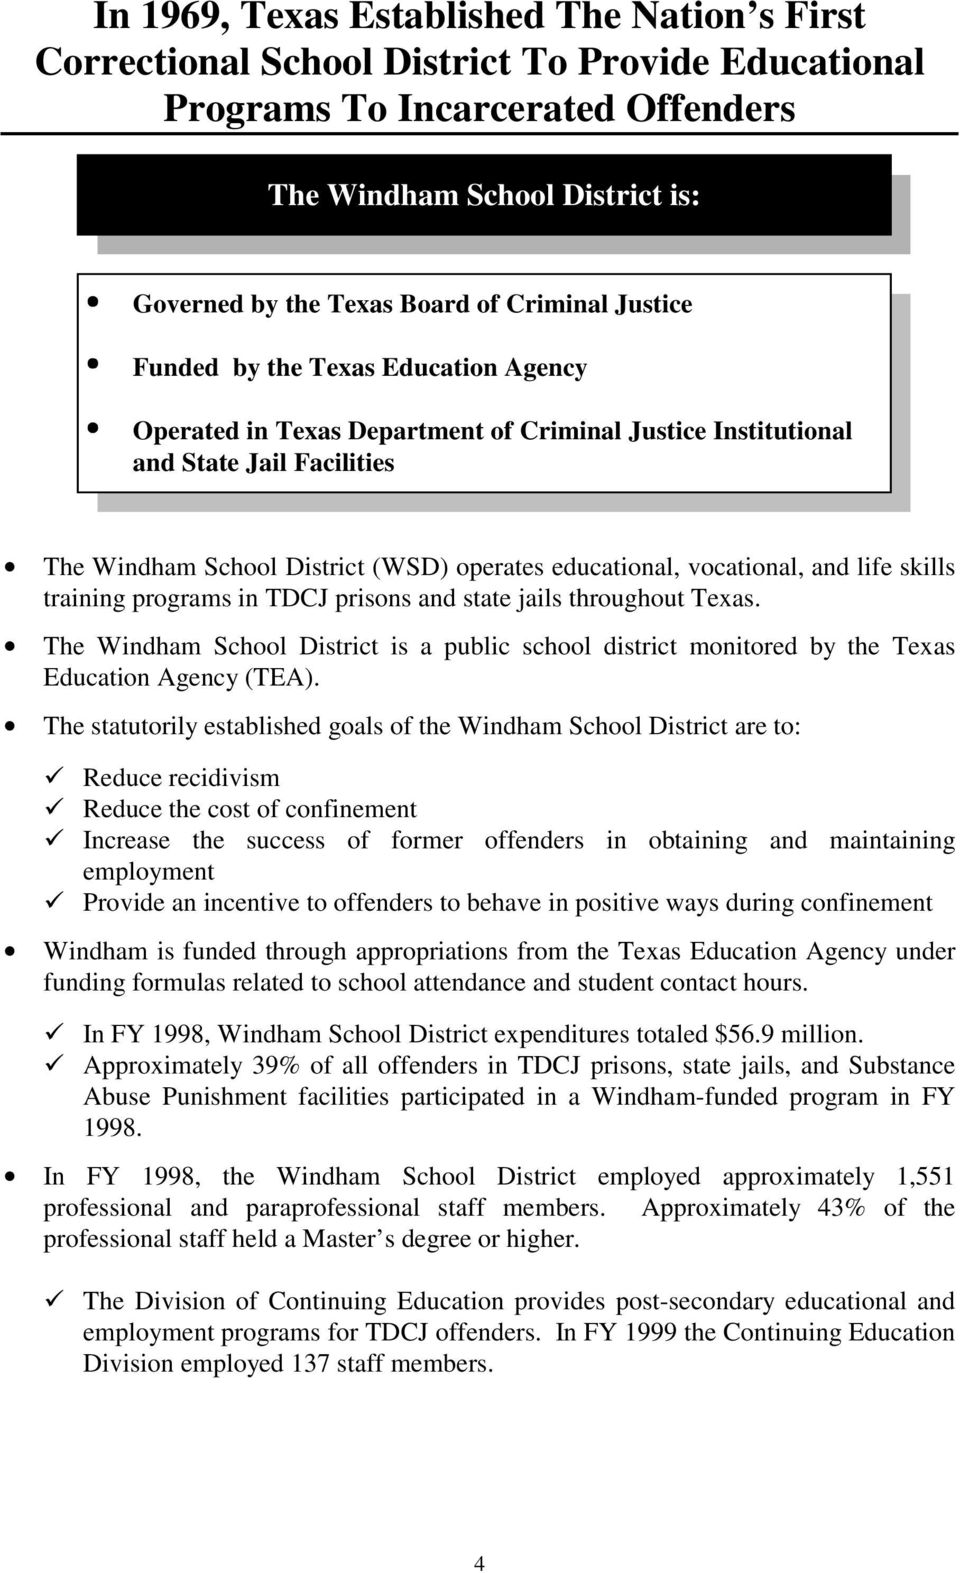 vocational, and life skills training programs in TDCJ prisons and state jails throughout Texas. The Windham School District is a public school district monitored by the Texas Education Agency (TEA).